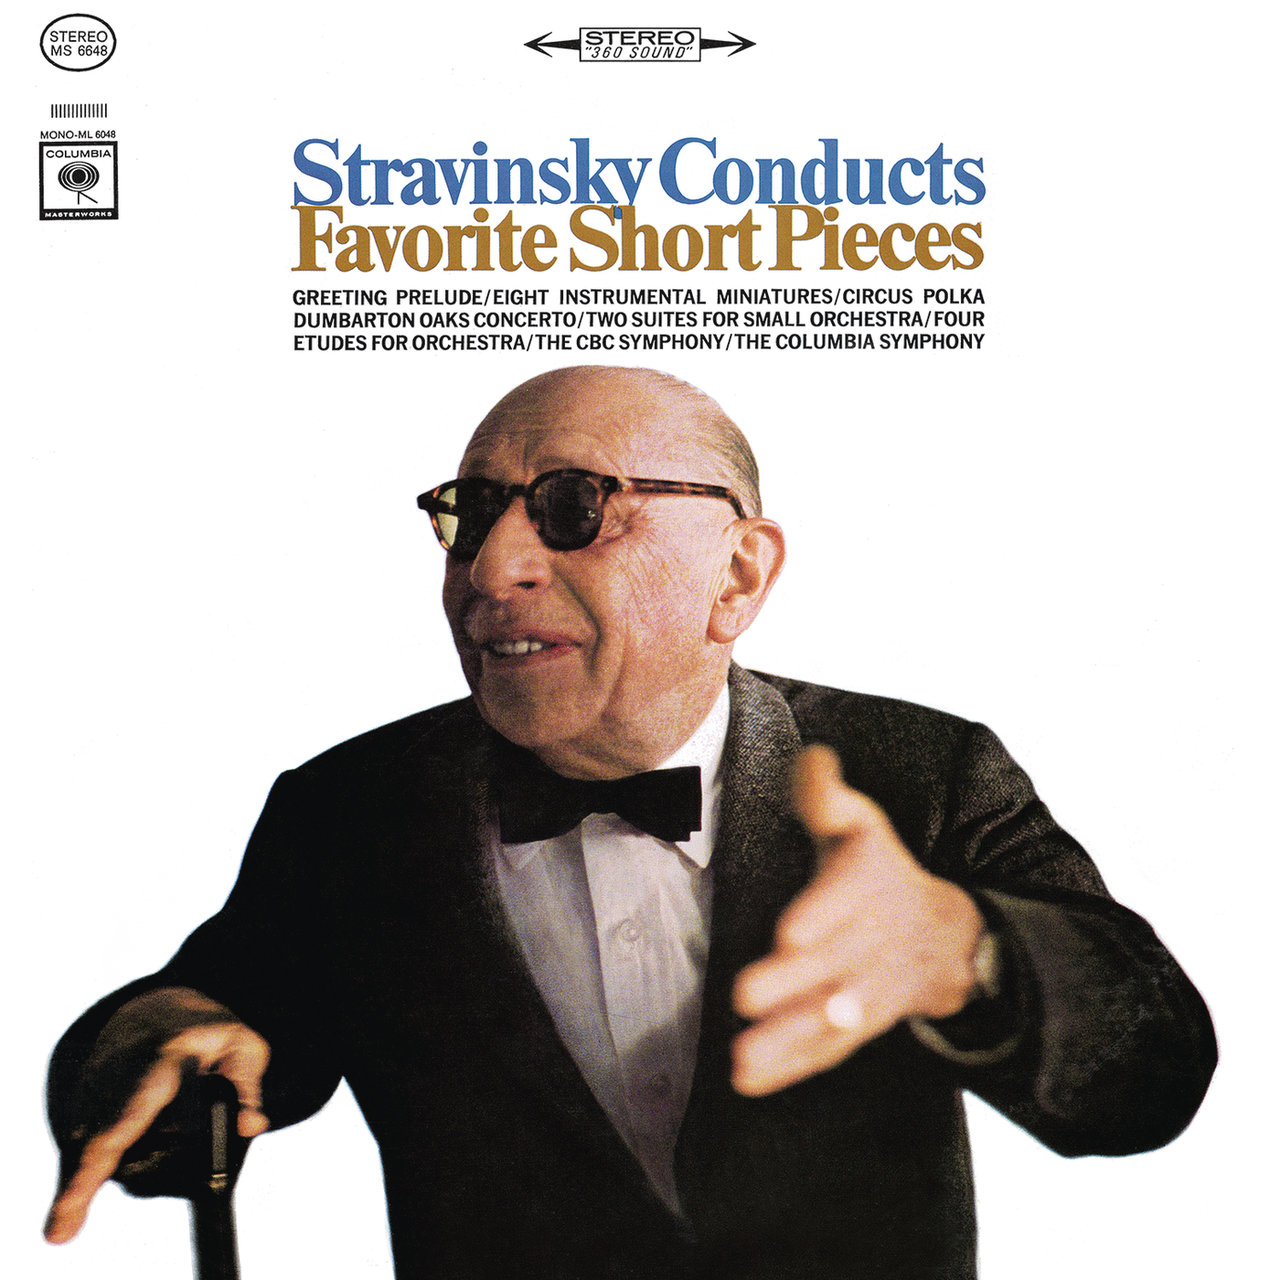 Tidal Listen To Stravinsky Conducts Favorite Short Pieces On Tidal